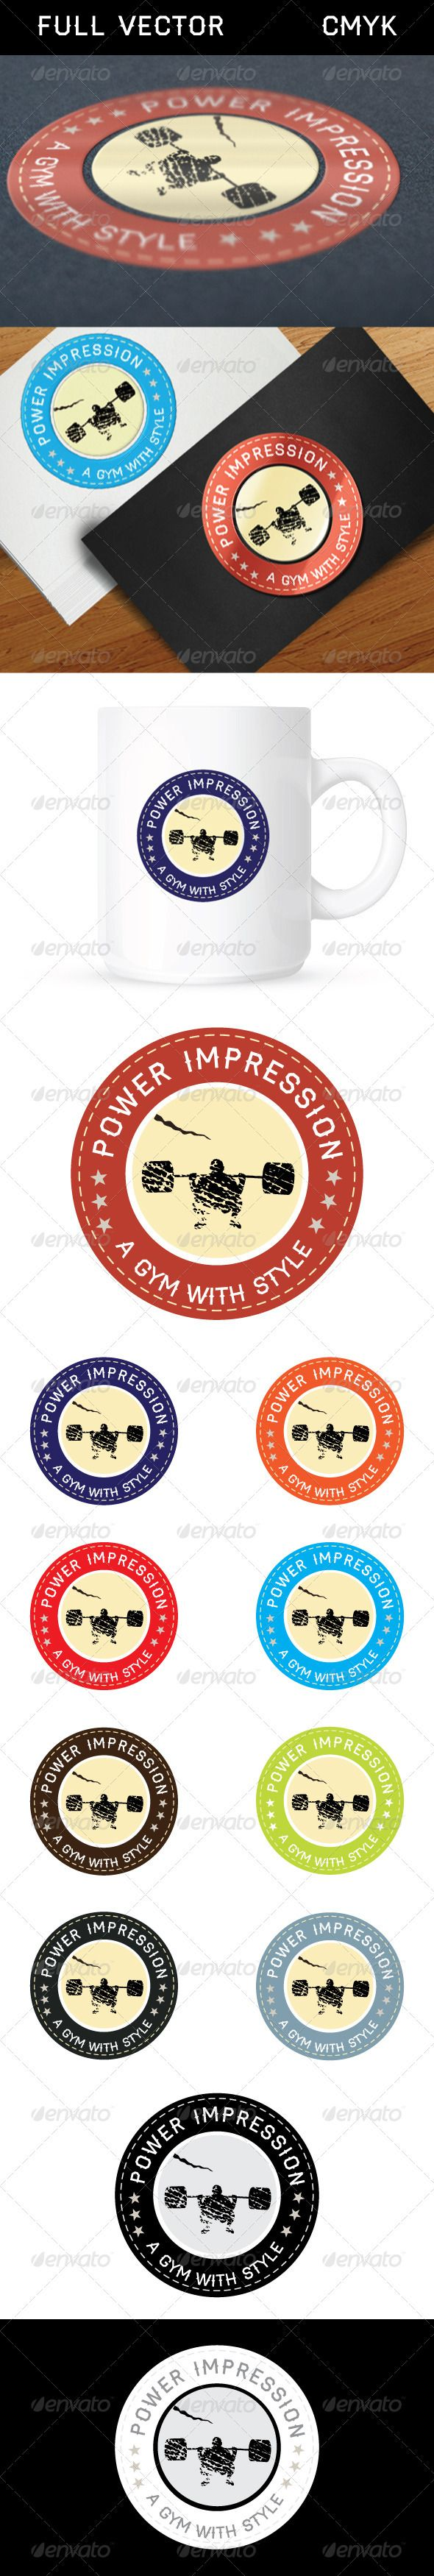 Power Impression Logo  #GraphicRiver          This is the vintage / retro trend logo. Can be Used with Gym, health and Fitness Club business, blog, websites, centres etc Free Font Used.  	 File is fully editable. All colors and text can be modified. High resolution files included in AI and EPS format.   	 Contact me if any additional customization is required. It will be offered with minimum fee.  	 Free Font is used and can be downloaded from:   .losttype /font/?name=haymaker     Created…